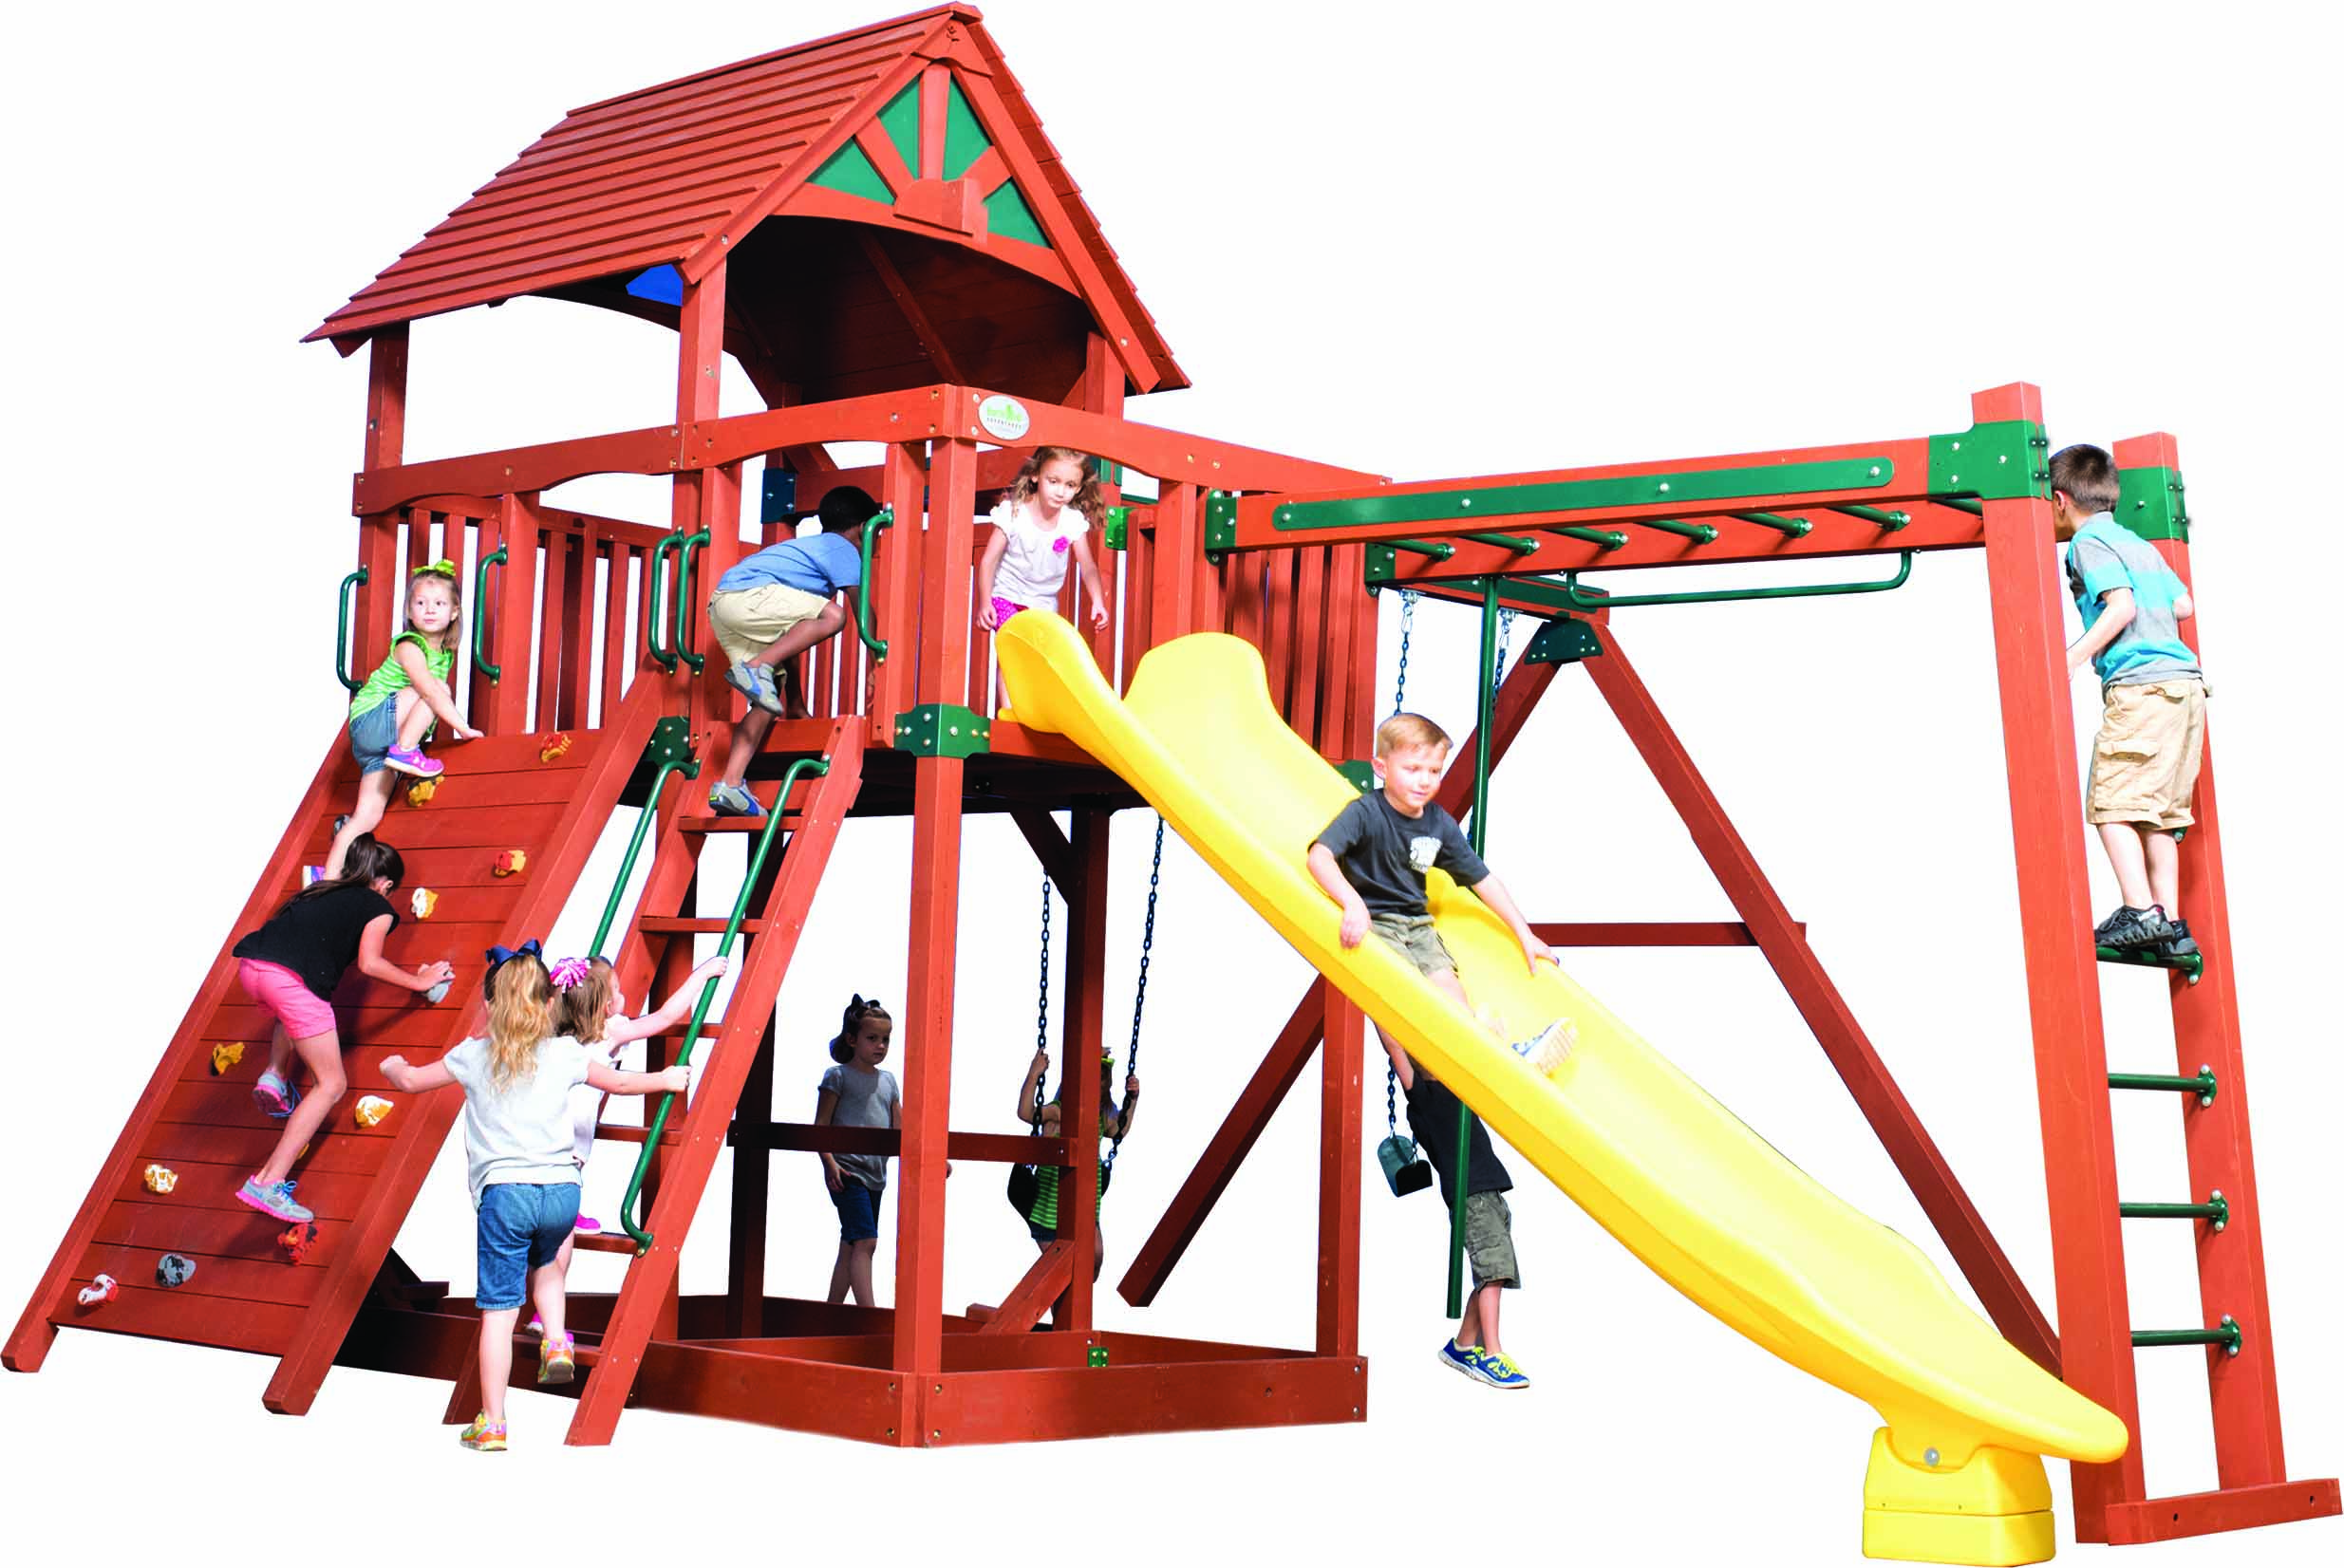 outdoor wooden design iii play cedar set playscapes costco playset of kits landing ideas swing playground playsets kids gorilla swingset for outdoors sets wayfair outing swingsets dazzling